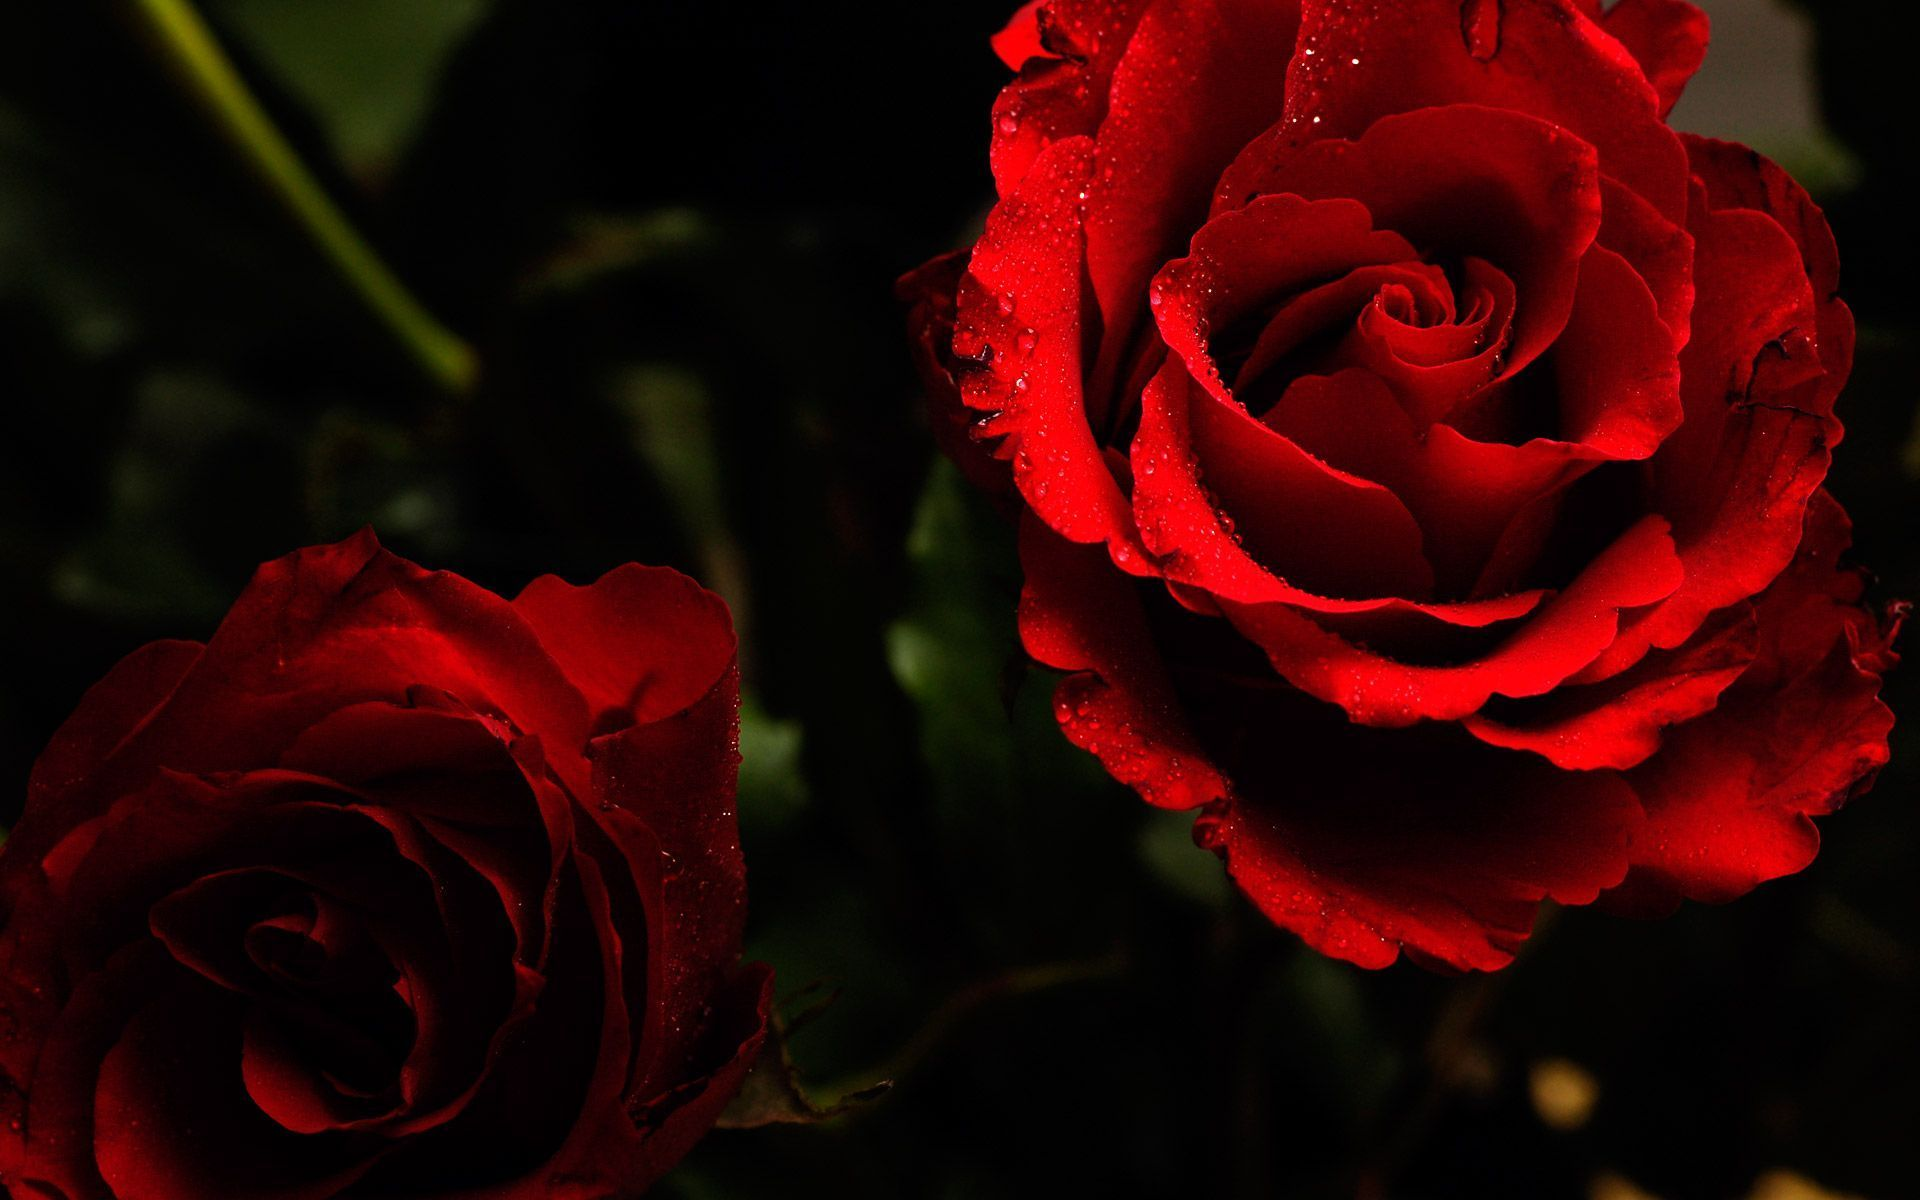 Roses Desktop Wallpaper Roses Images Free Download New